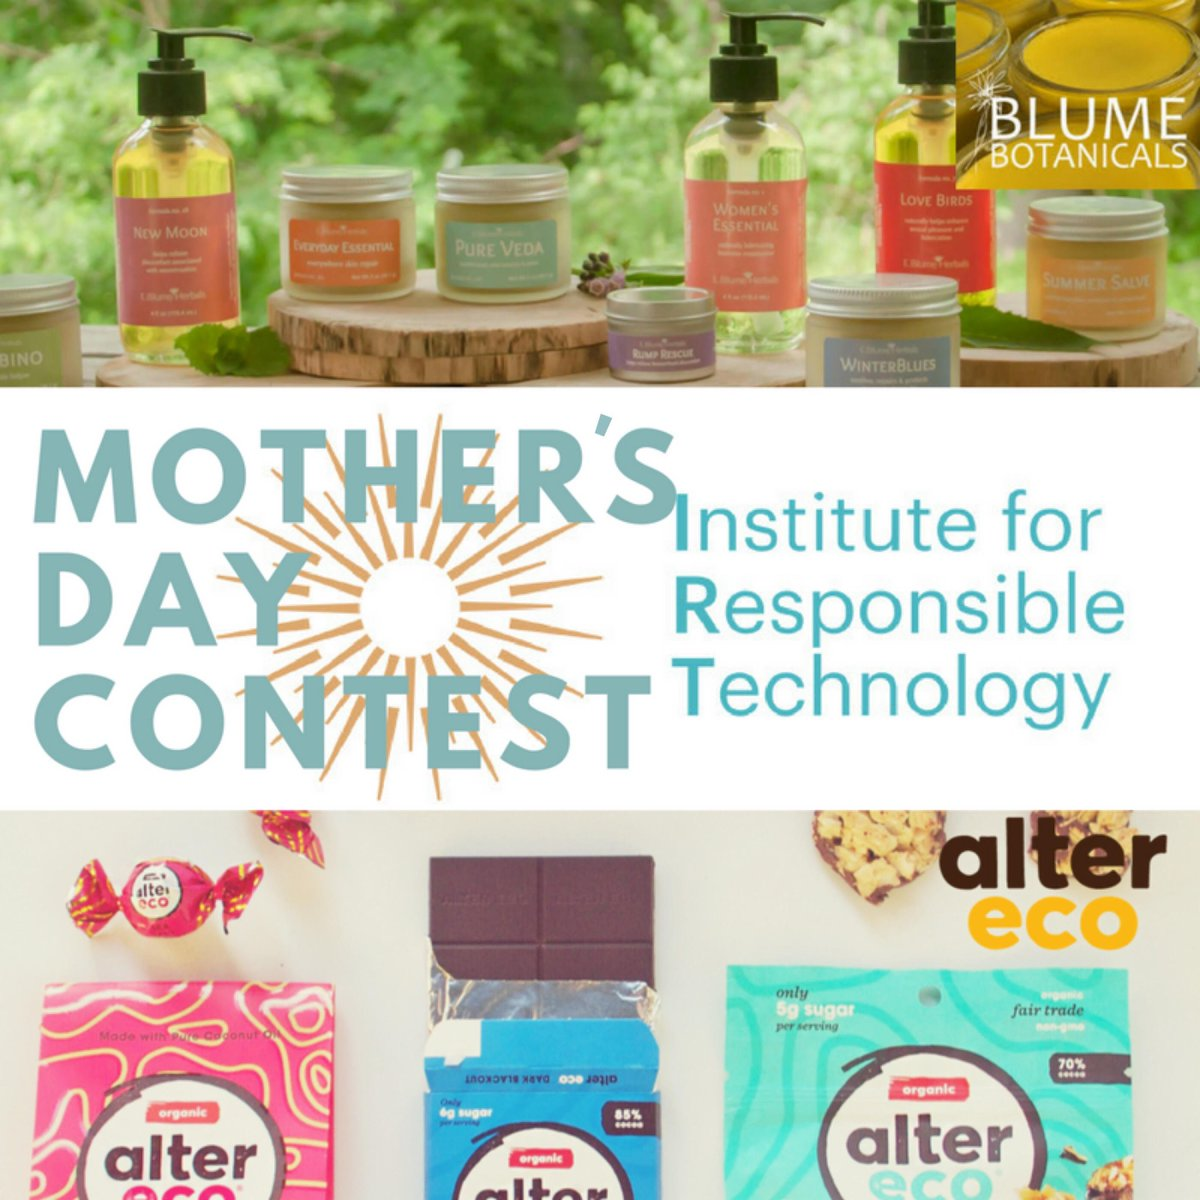 Mother's Day Giveaway: Enter to win organic chocolates and pampering for your mom this Mother's Day. https://bit.ly/2KBgLOw  #MothersDay #MothersDayGifts #foodie #organic